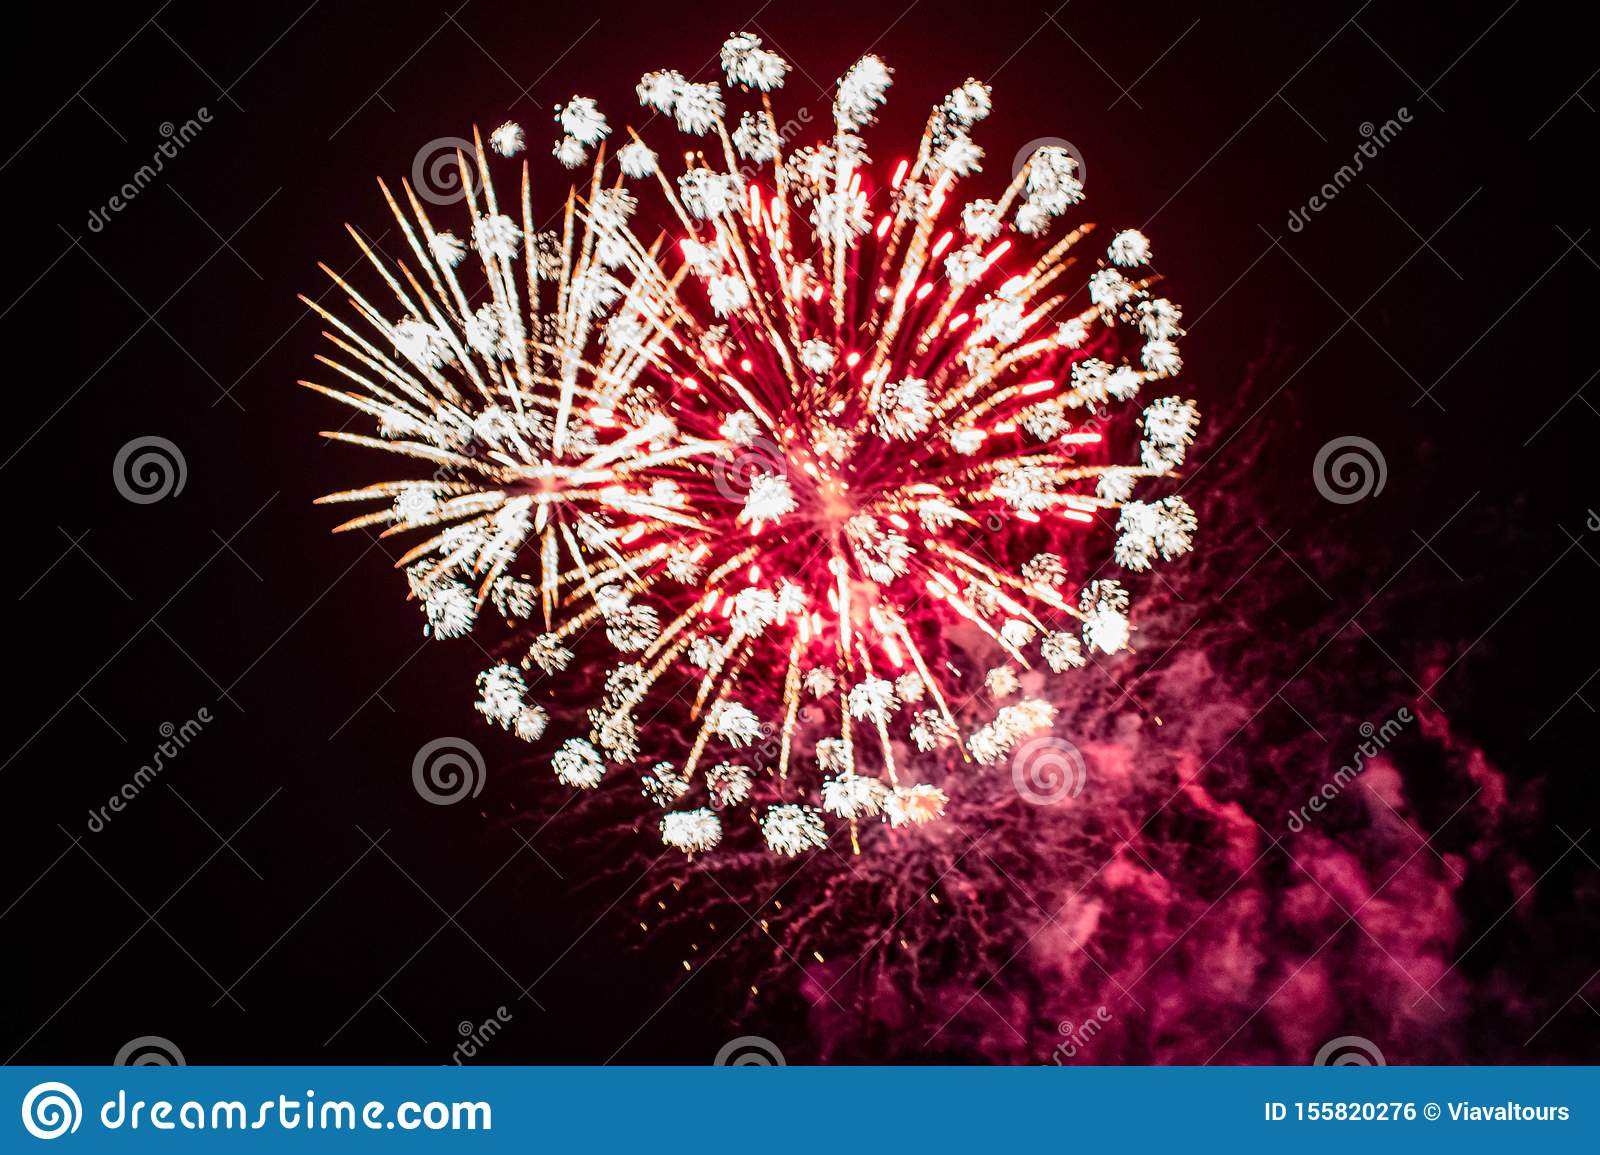 Colorful fireworks in Summer Nights 1.